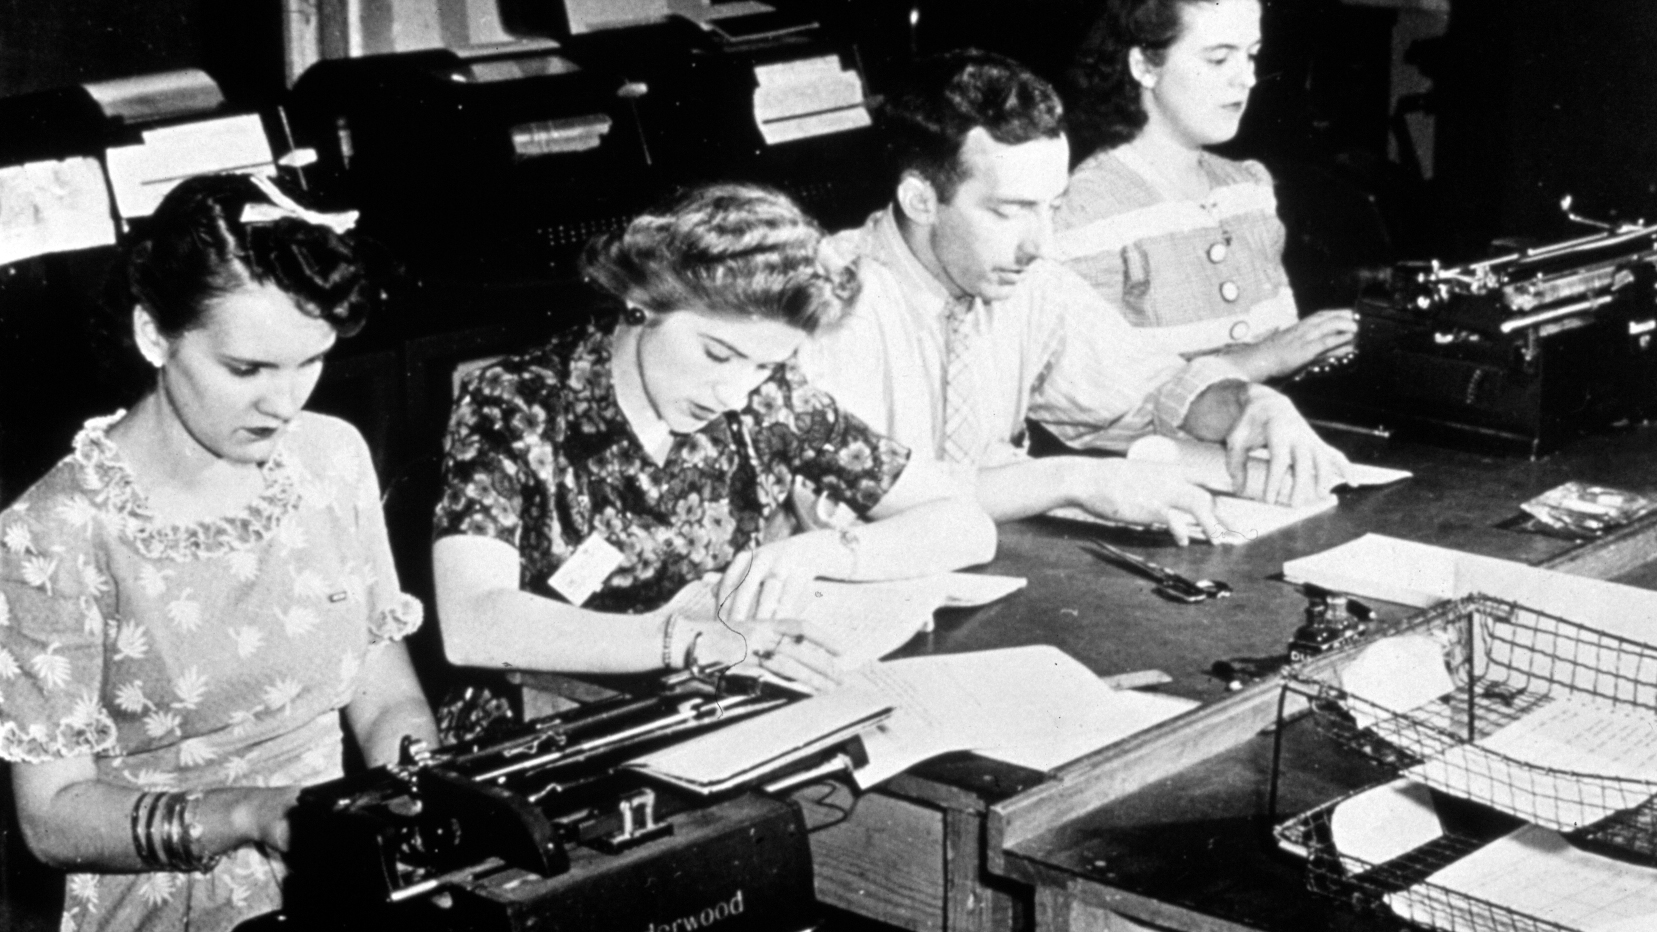 Weather forecasts being prepared for teletype.